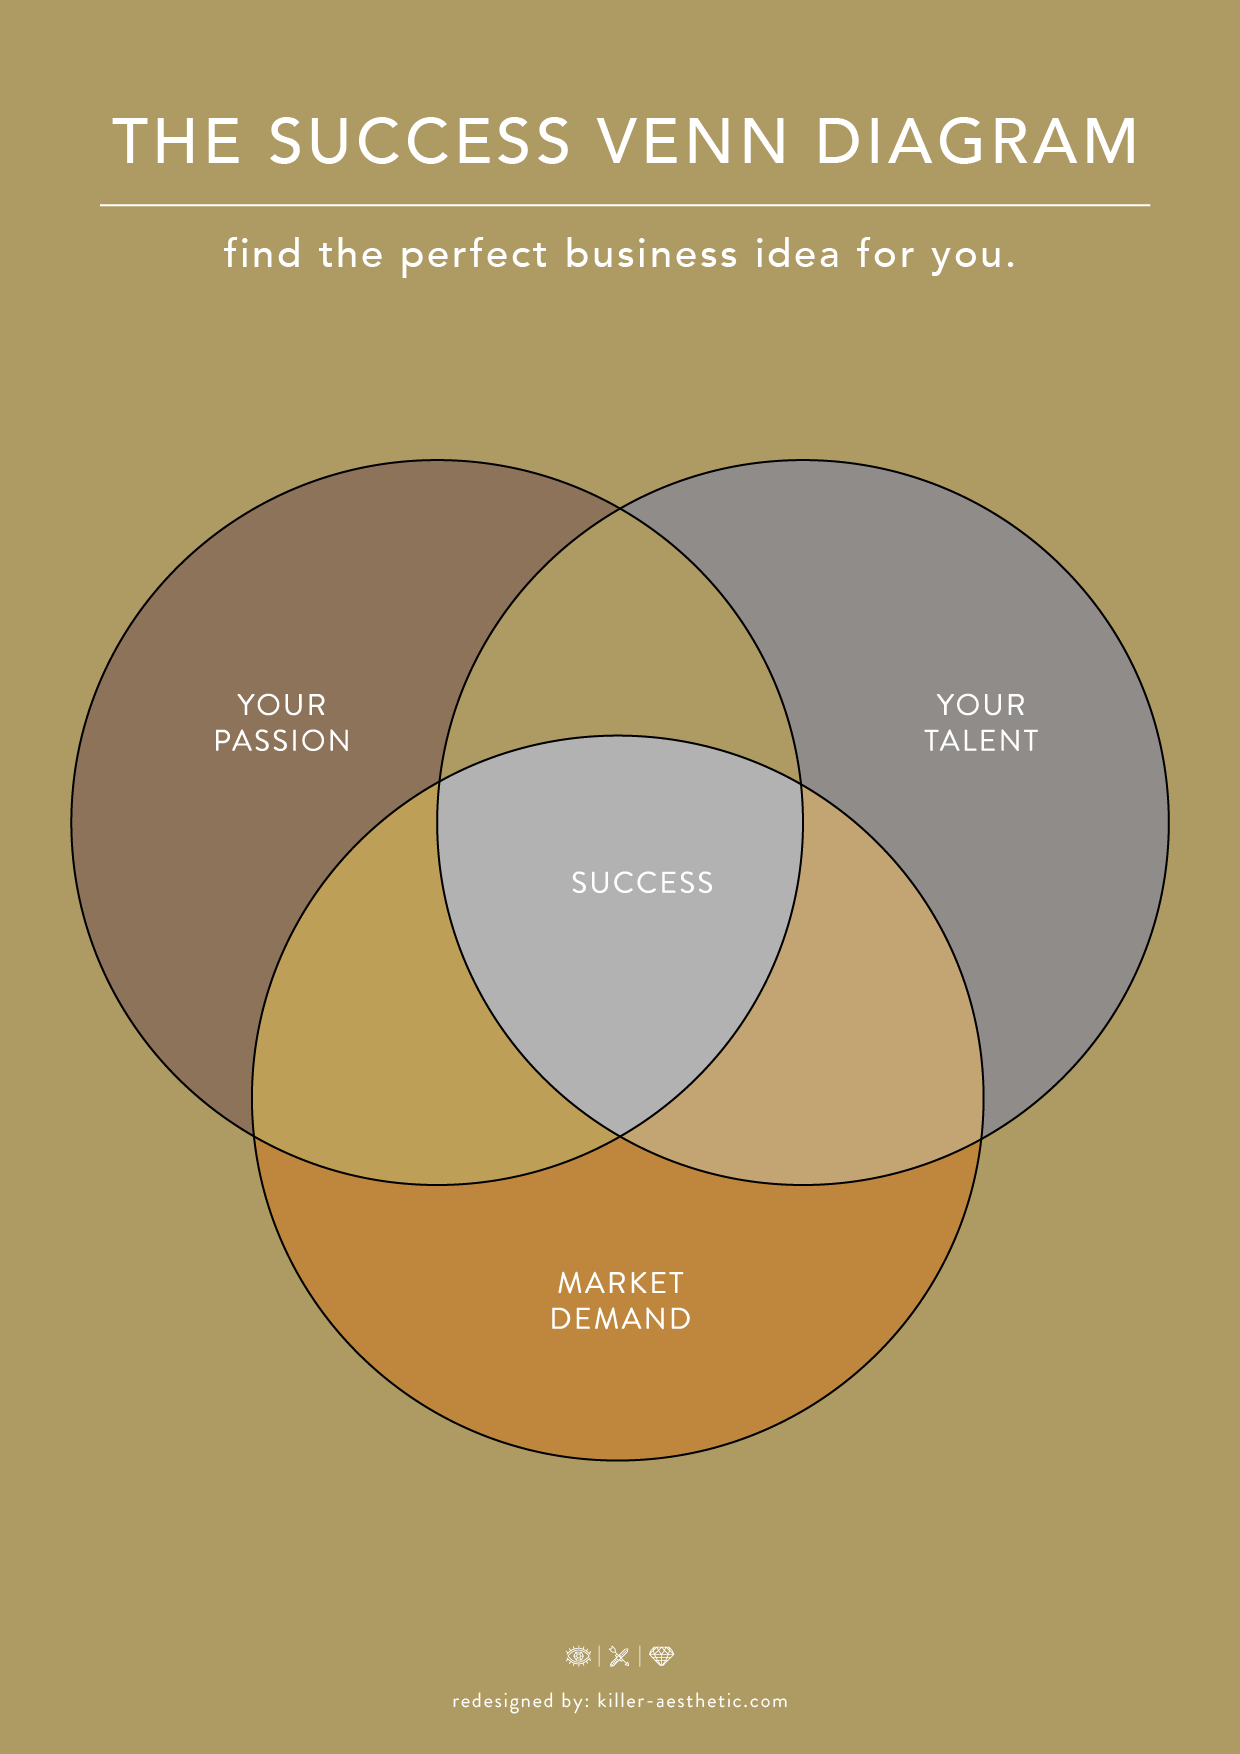 The success venn diagram designed by killer aesthetic the success venn diagram designed by killer aesthetic perthgraphicdesigner ccuart Choice Image